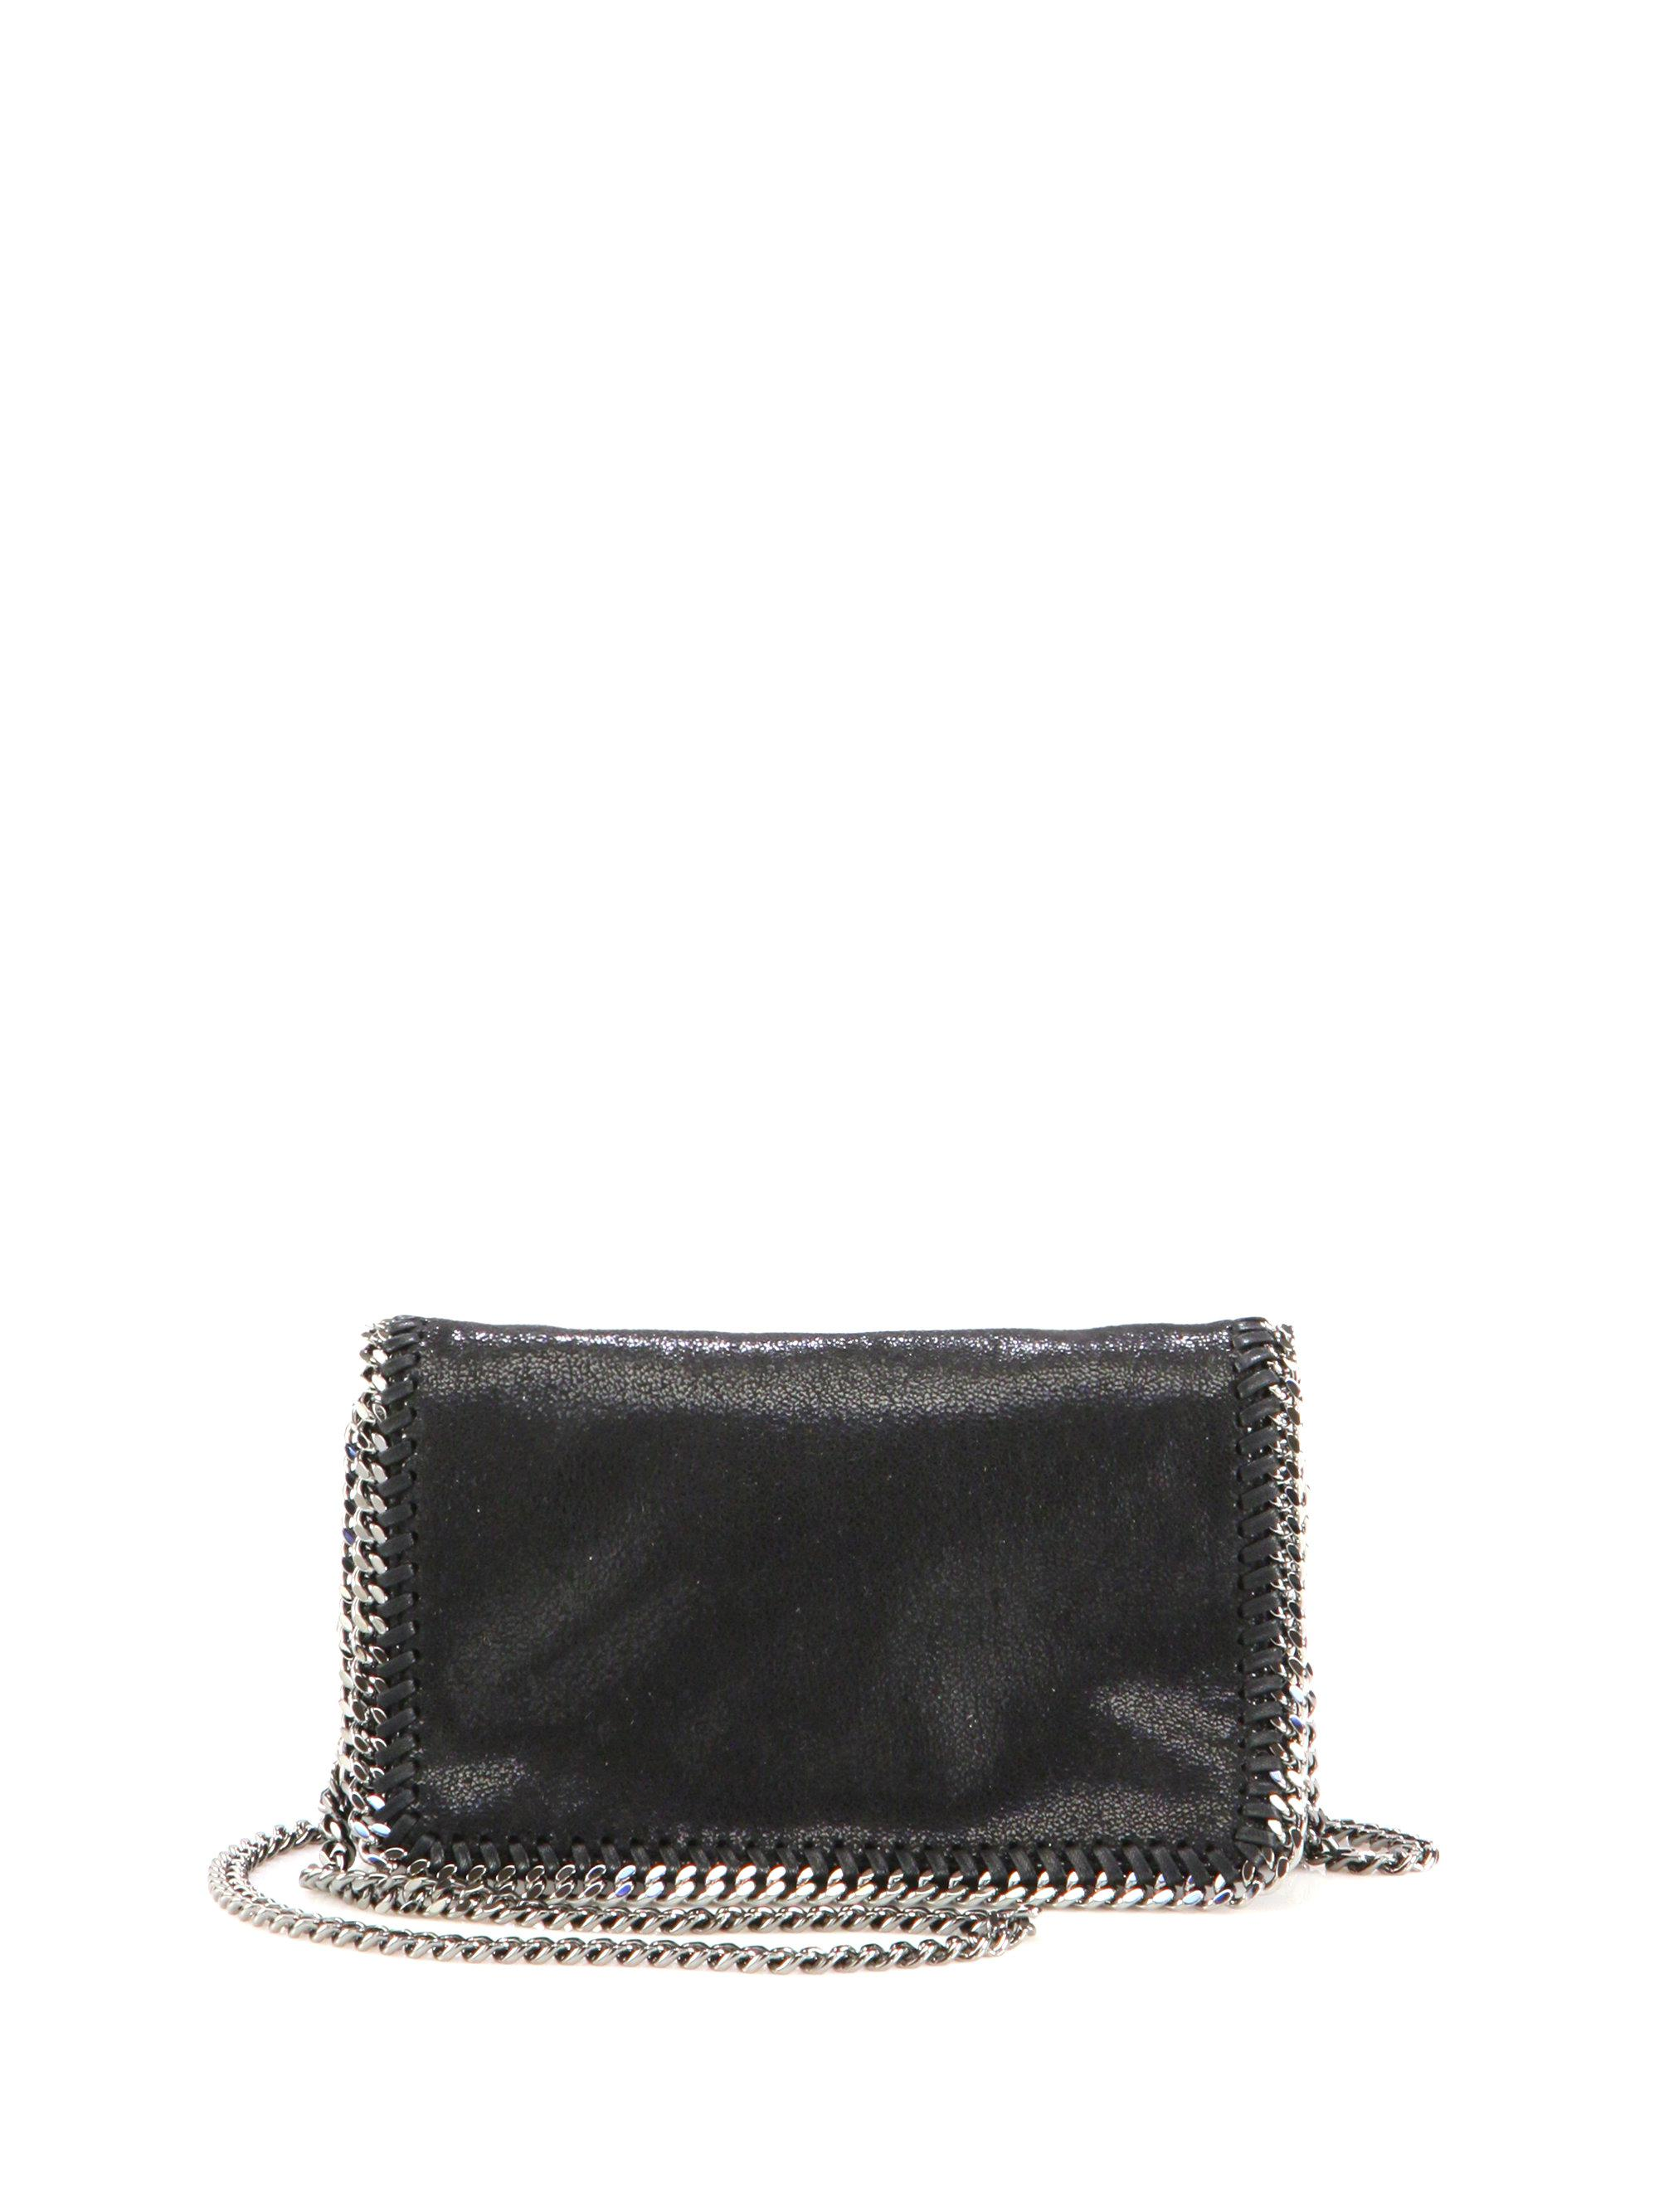 Stella Mccartney Falabella Faux Leather Fold-over Chain Crossbody ... 1310768e89707